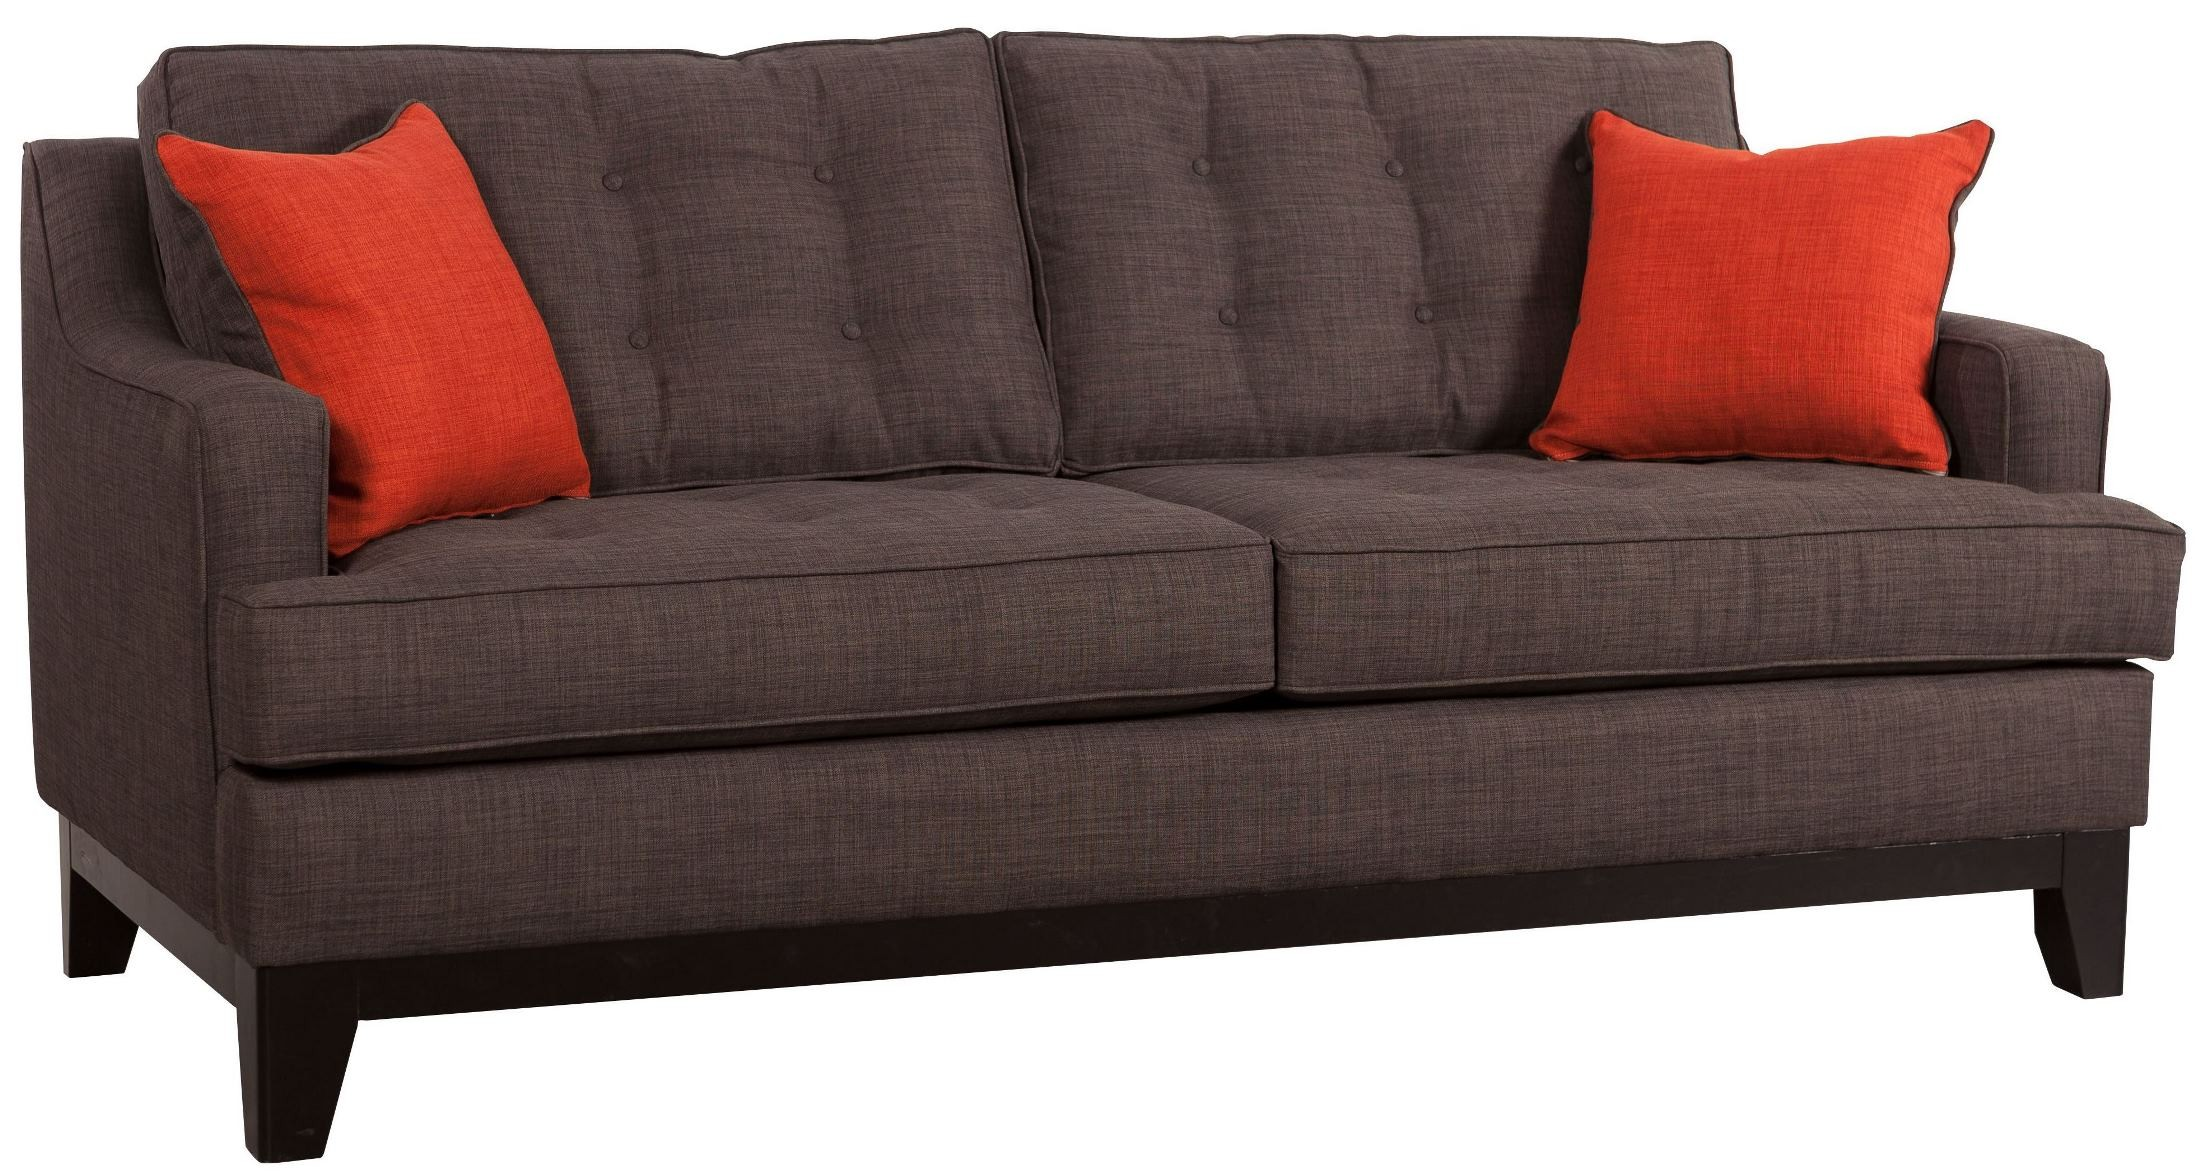 Chicago Burnt Orange Charcoal Sofa From Zuo Mod 100174 Coleman Furniture